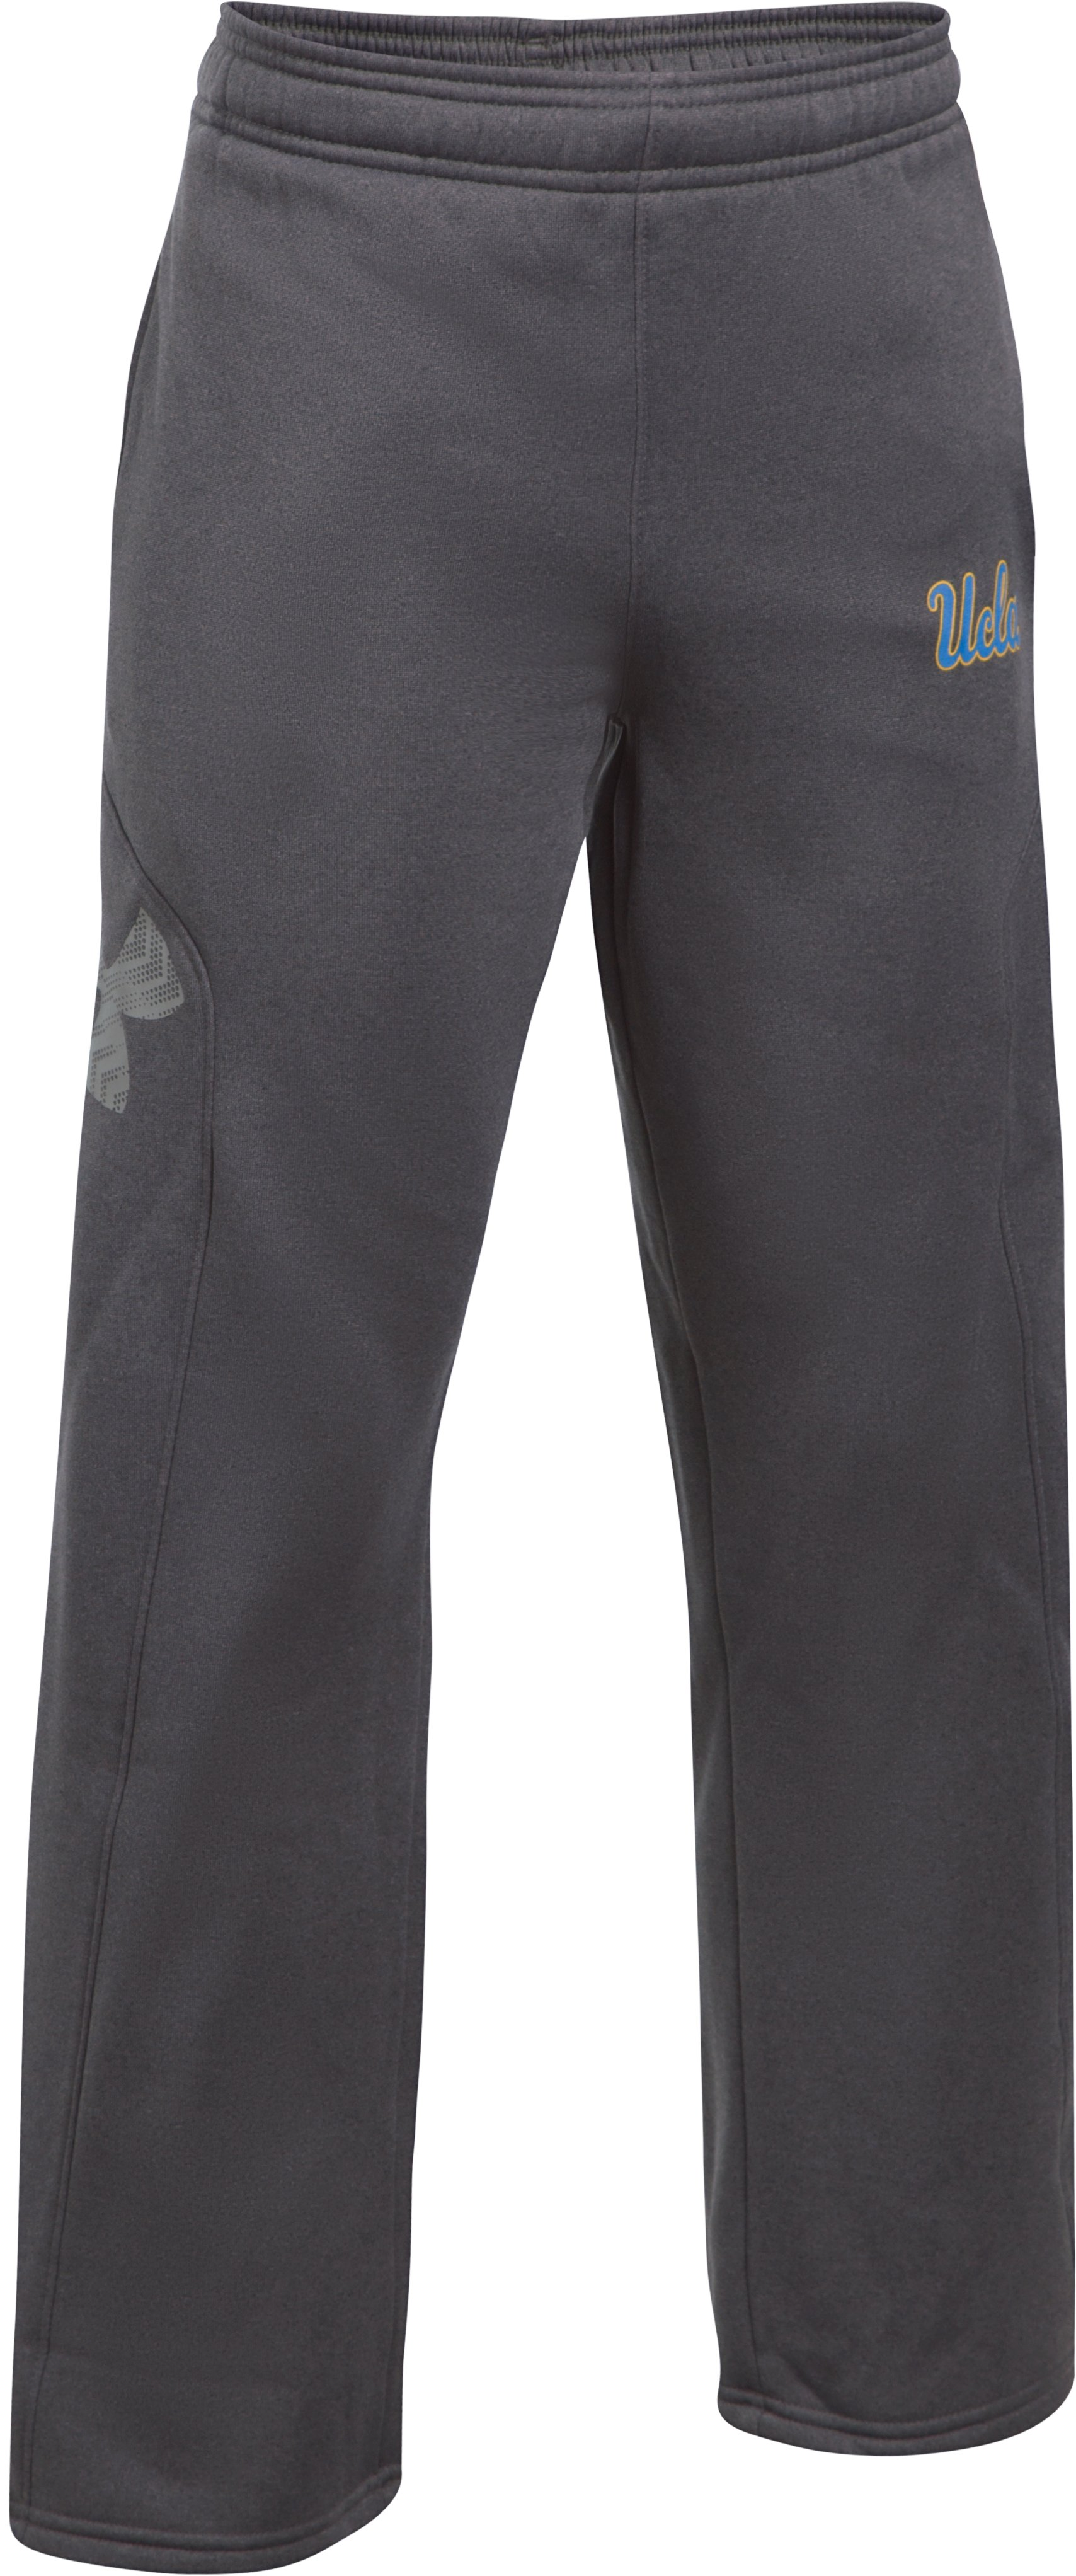 Boys' UCLA UA Big Logo Pants, Carbon Heather, zoomed image